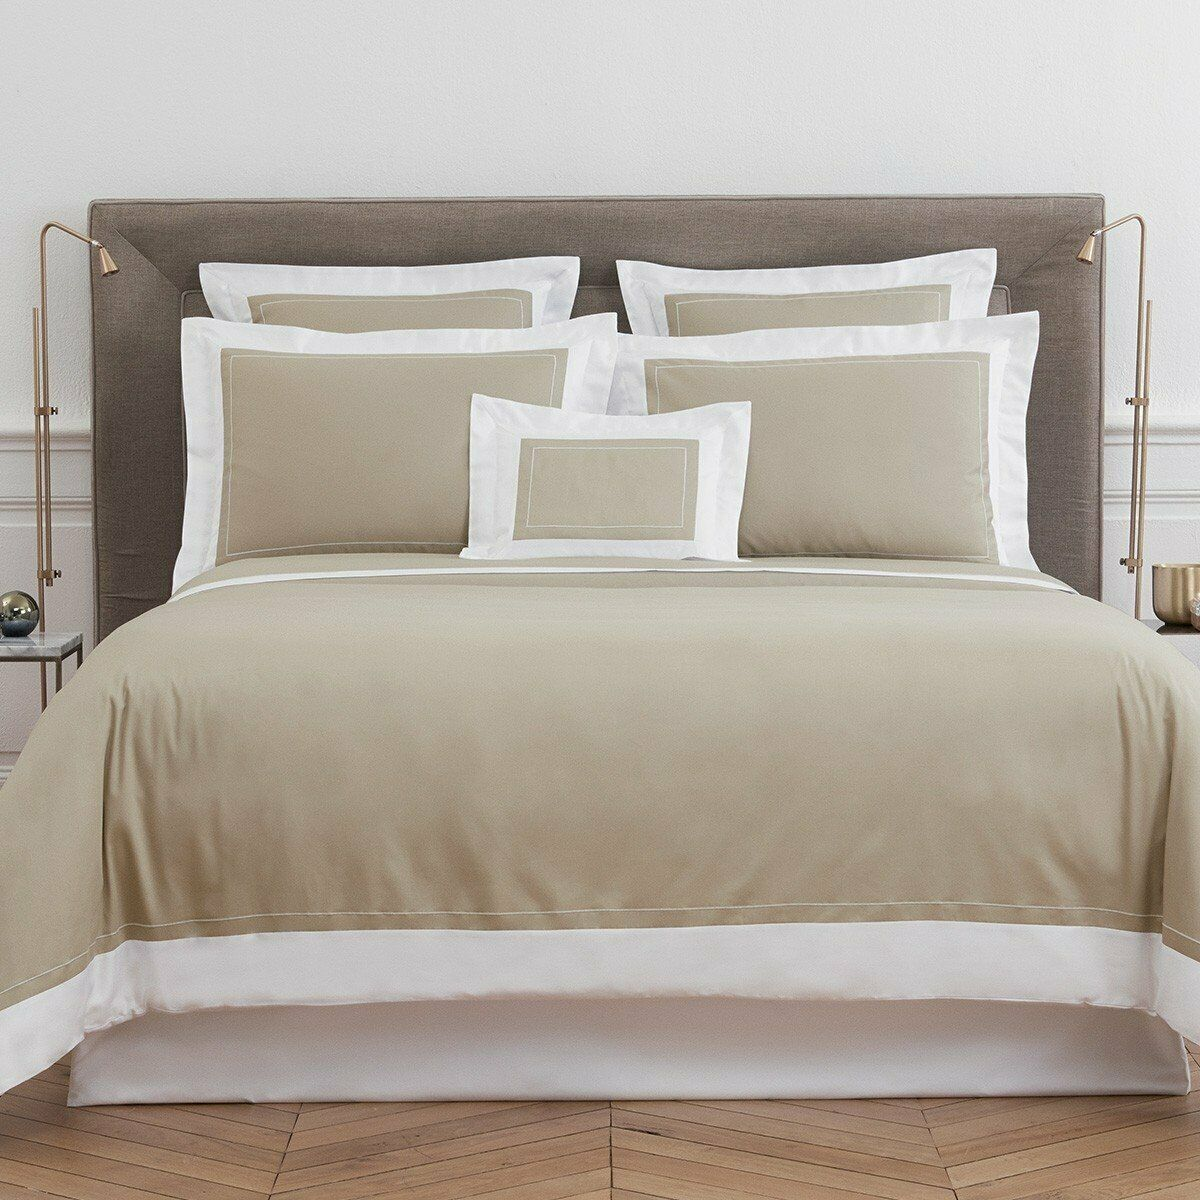 FRANCE YVES DELORME UCETIA SOLID COLOR COTTON SATEEN DUVET COVER IN WHITE FRAME